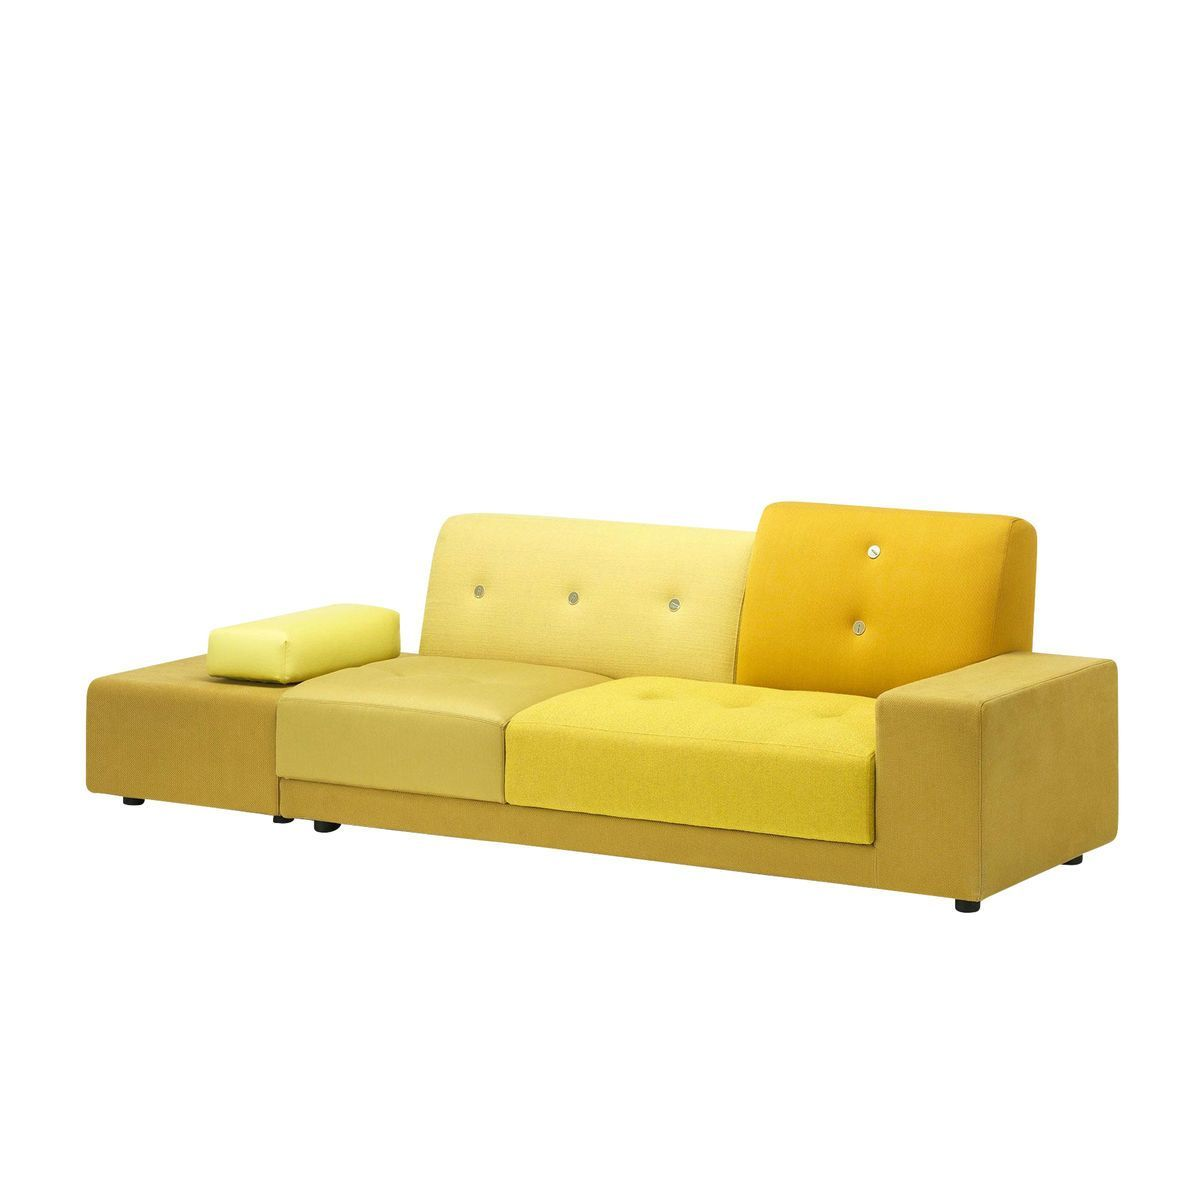 polder sofa  vitra  ambientedirectcom - vitra  polder sofa xcm  fabric mix golden yellow